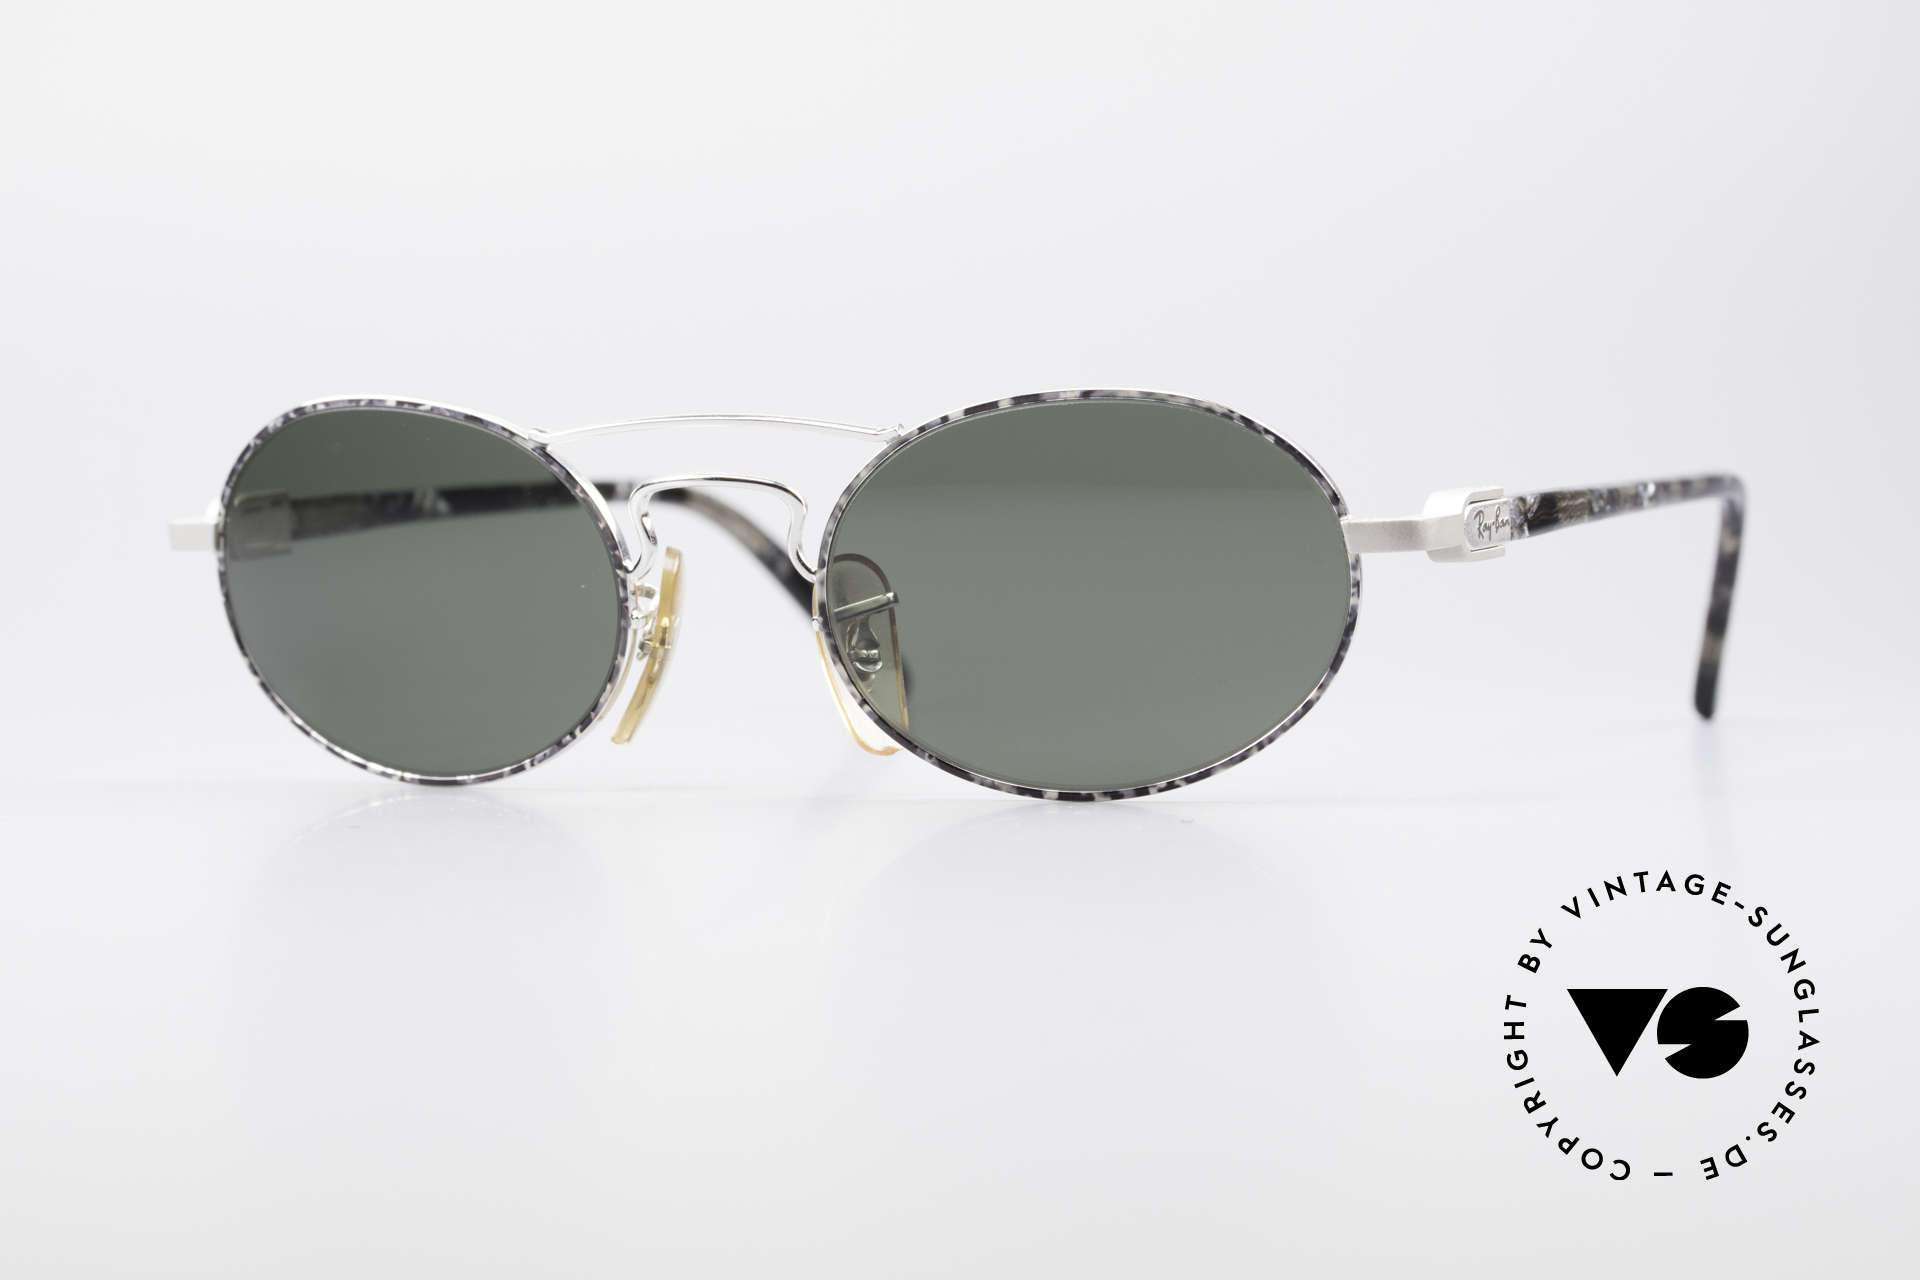 Ray Ban Chaos Oval 90's B&L USA Shades W2009, vintage B&L RAY BAN CHAOS OVAL W2009 G15 XLT, Made for Men and Women